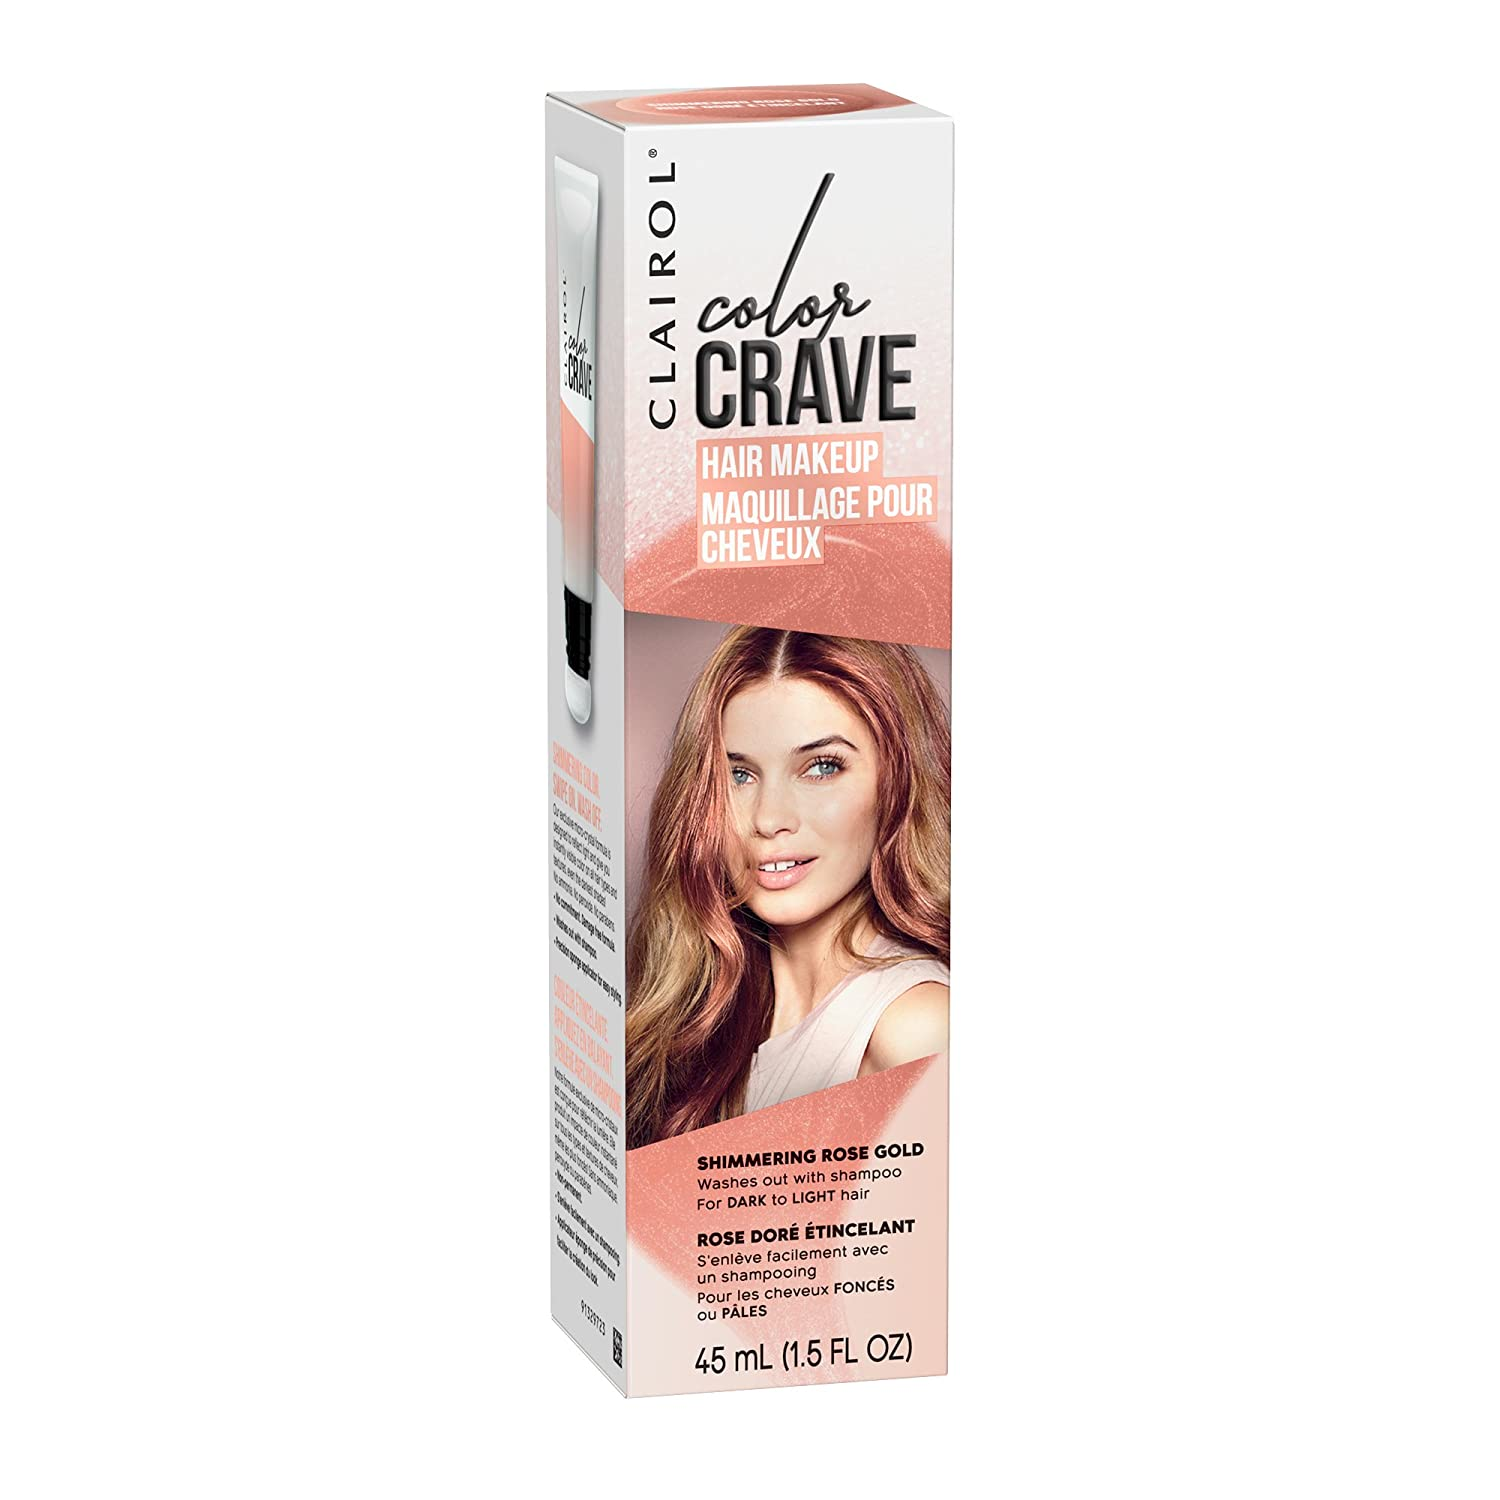 Clairol Color Crave Temporary Hair Color Makeup, Shimmering Rose Gold, 1 Count